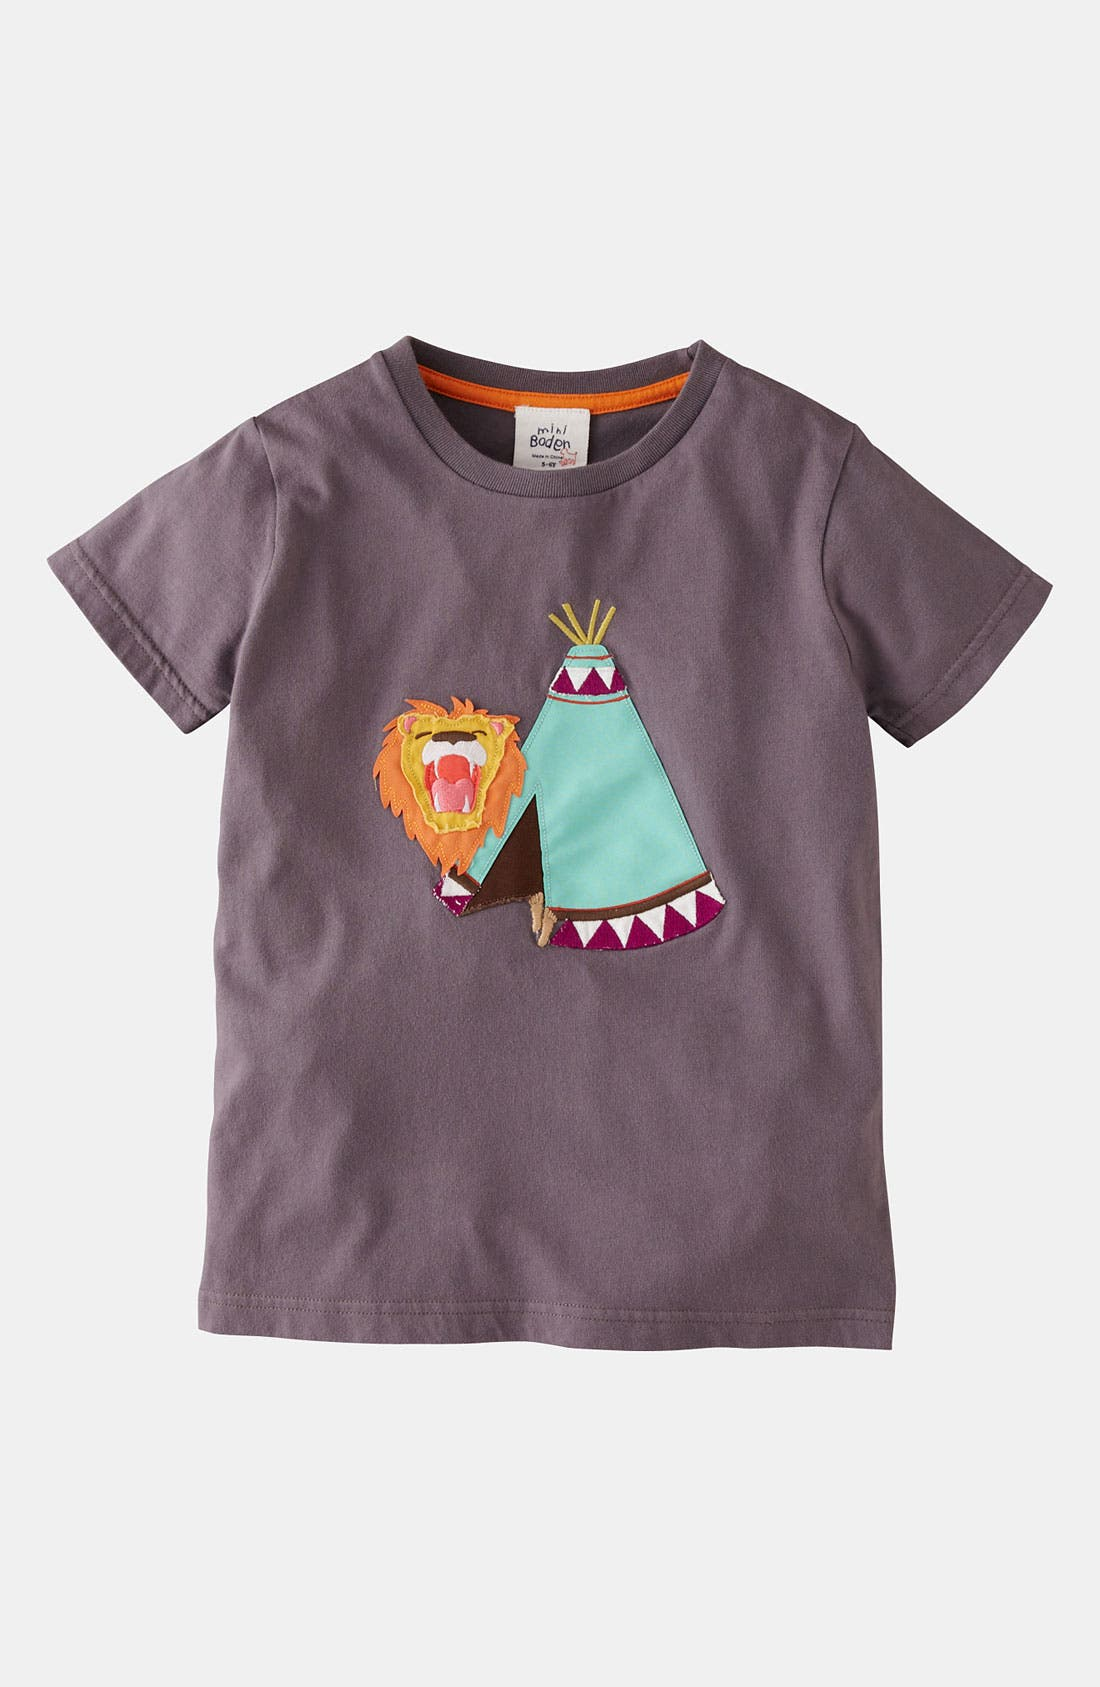 Alternate Image 1 Selected - Mini Boden 'Adventure Appliqué' T-Shirt (Toddler, Little Boys & Big Boys)